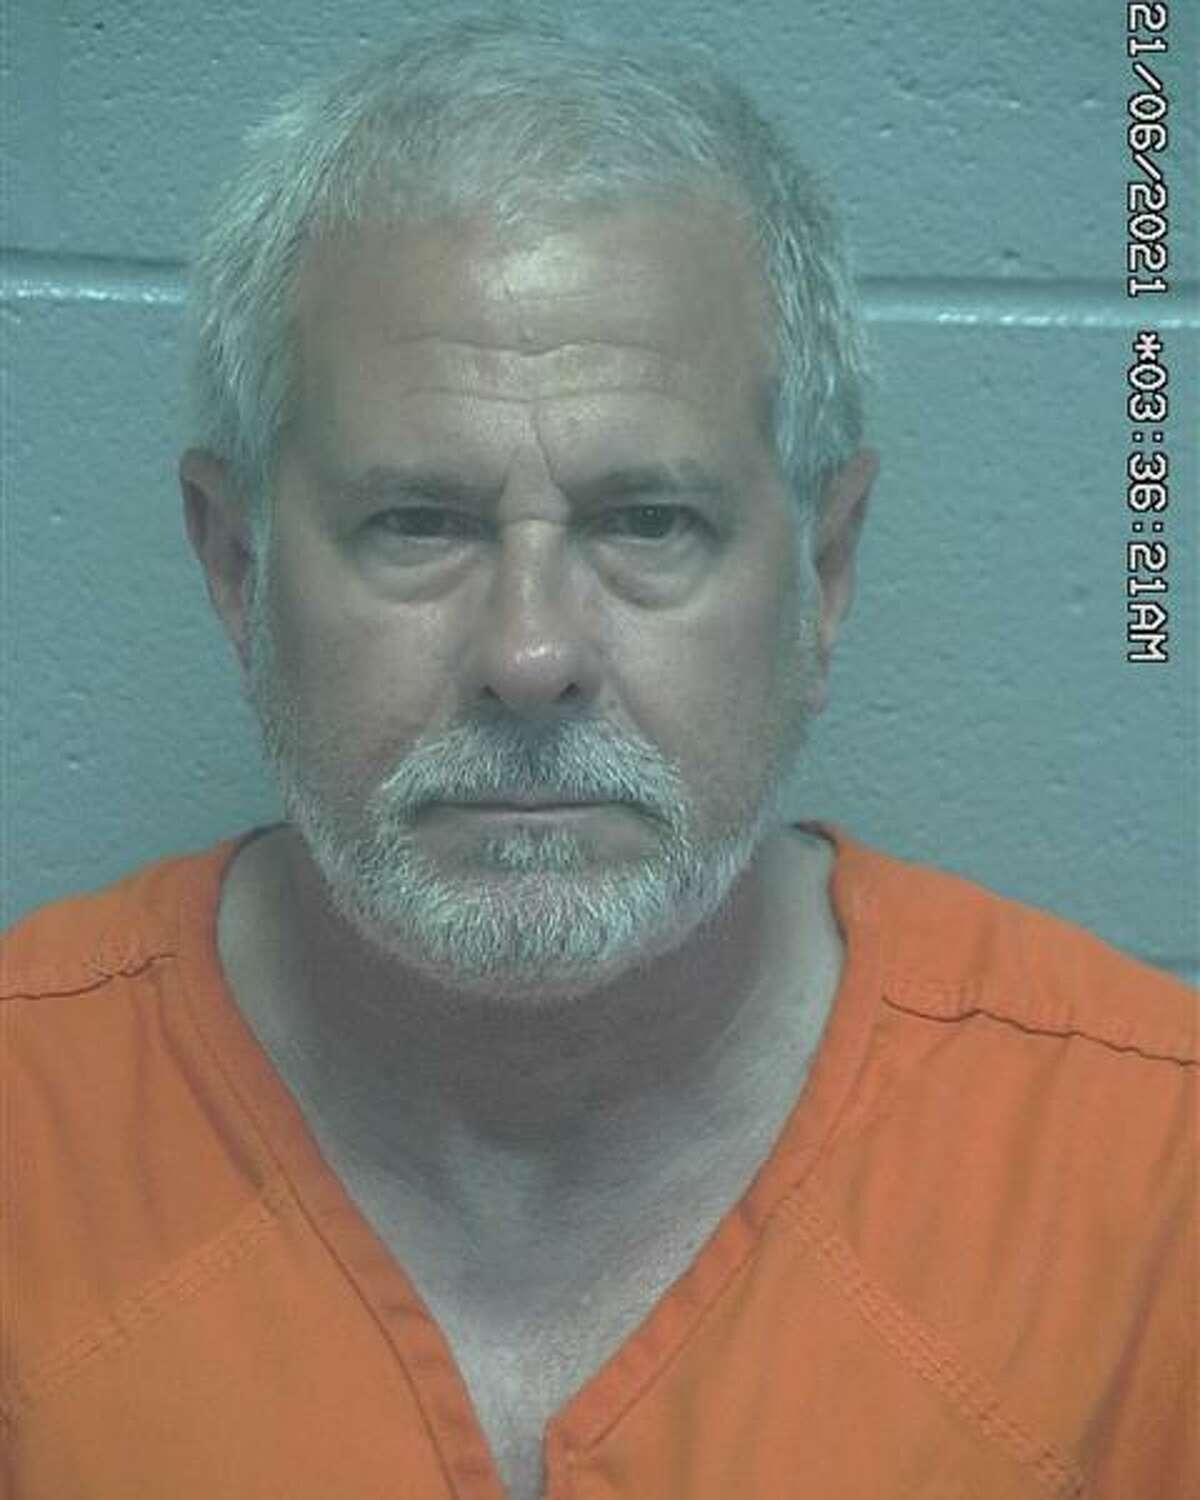 Brian Charles Stubbs, 62, was arrested June 20, 2021, and charged with aggravated assault causing serious bodily injury and using a deadly weapon.